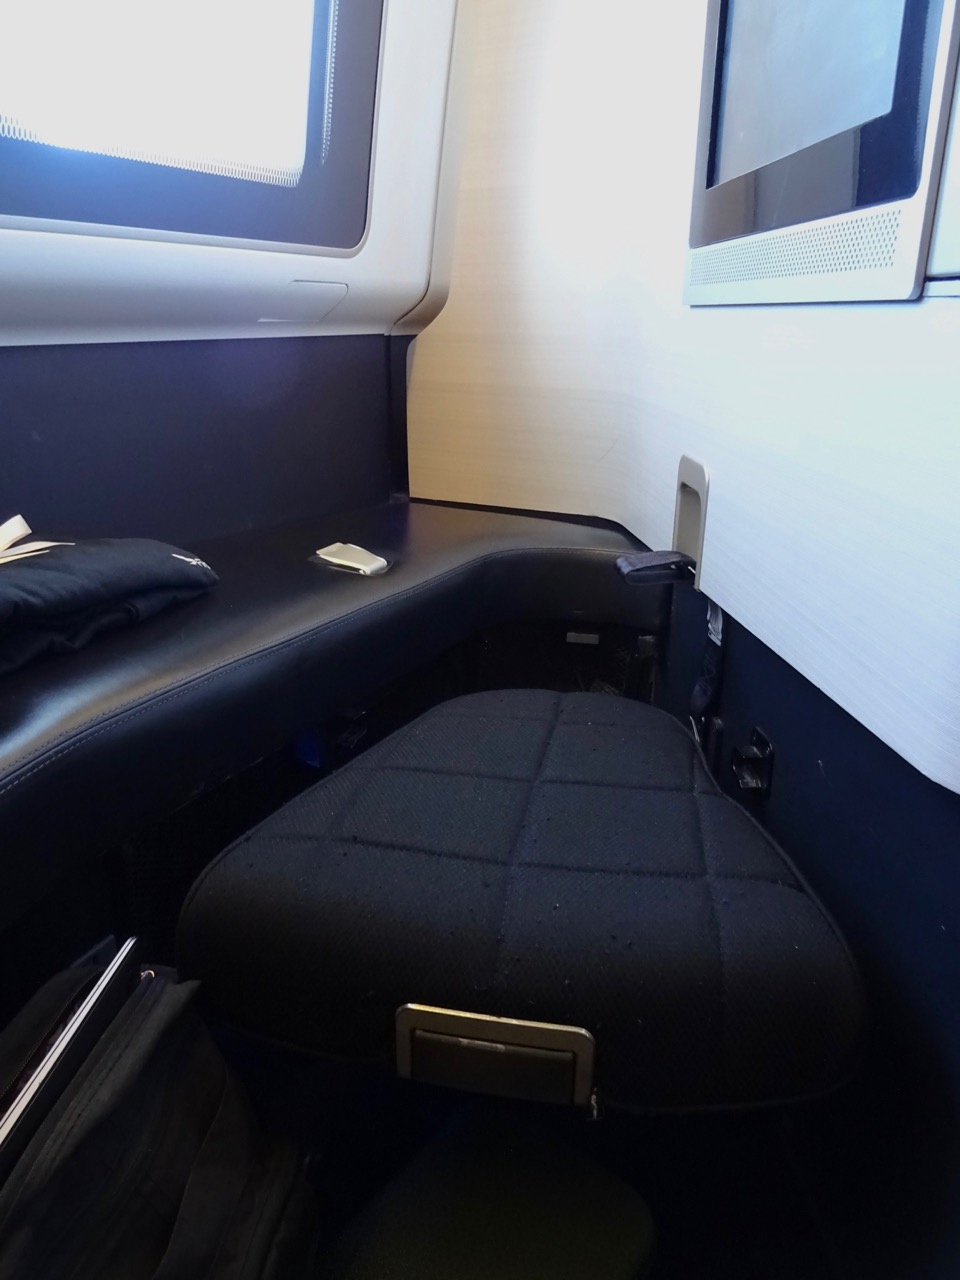 British Airways 777 First Class footstool